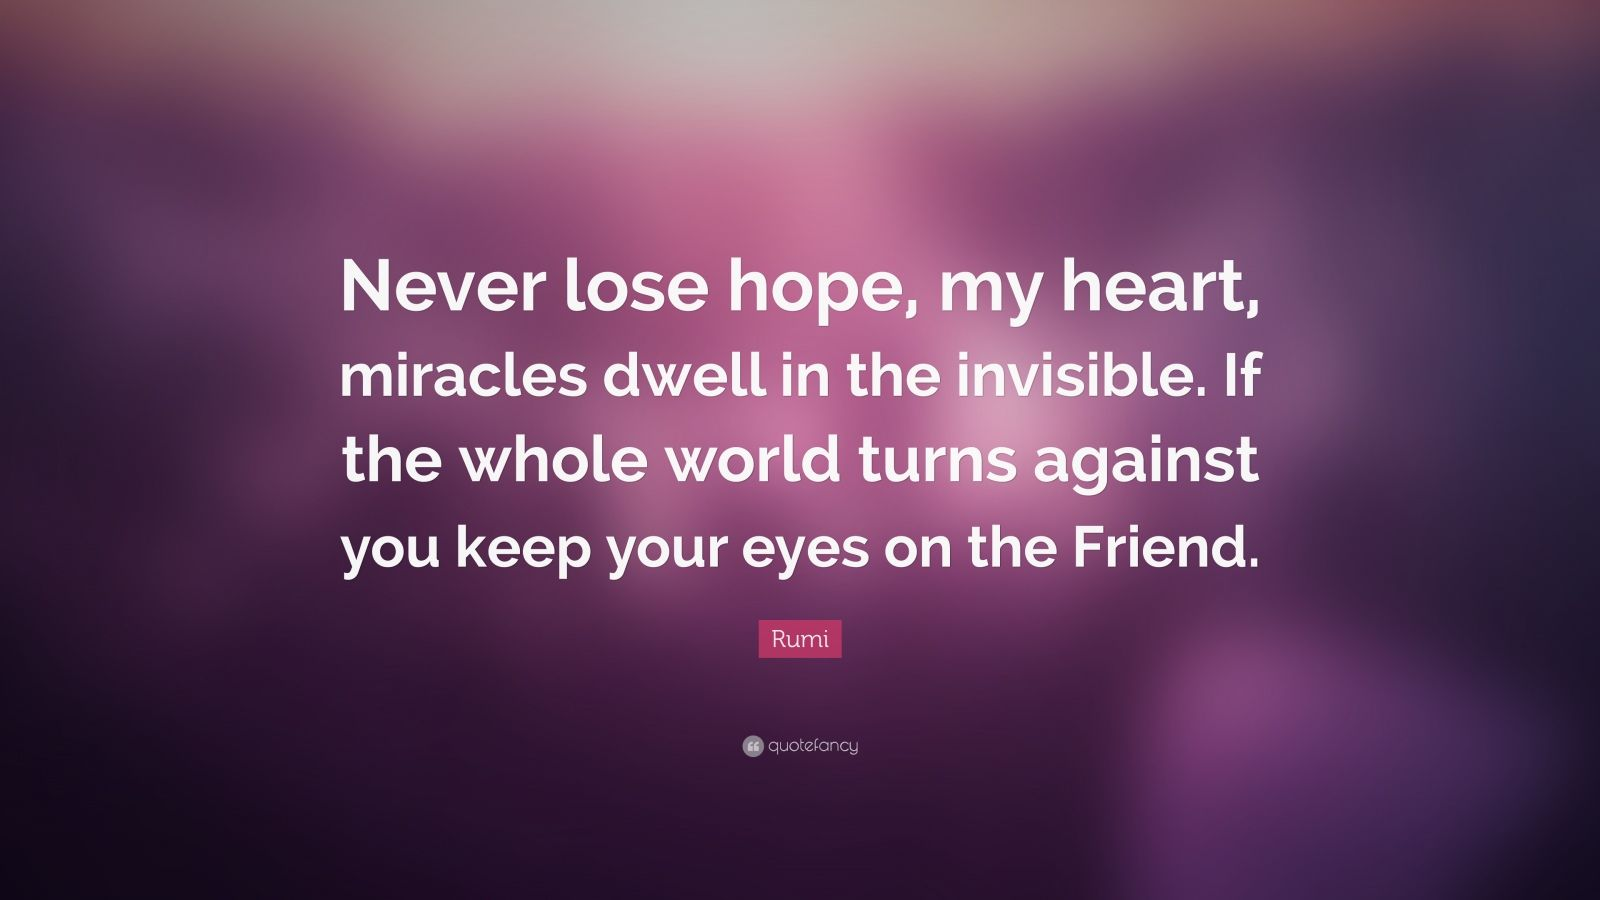 rumi quote   u201cnever lose hope  my heart  miracles dwell in the invisible  if the whole world